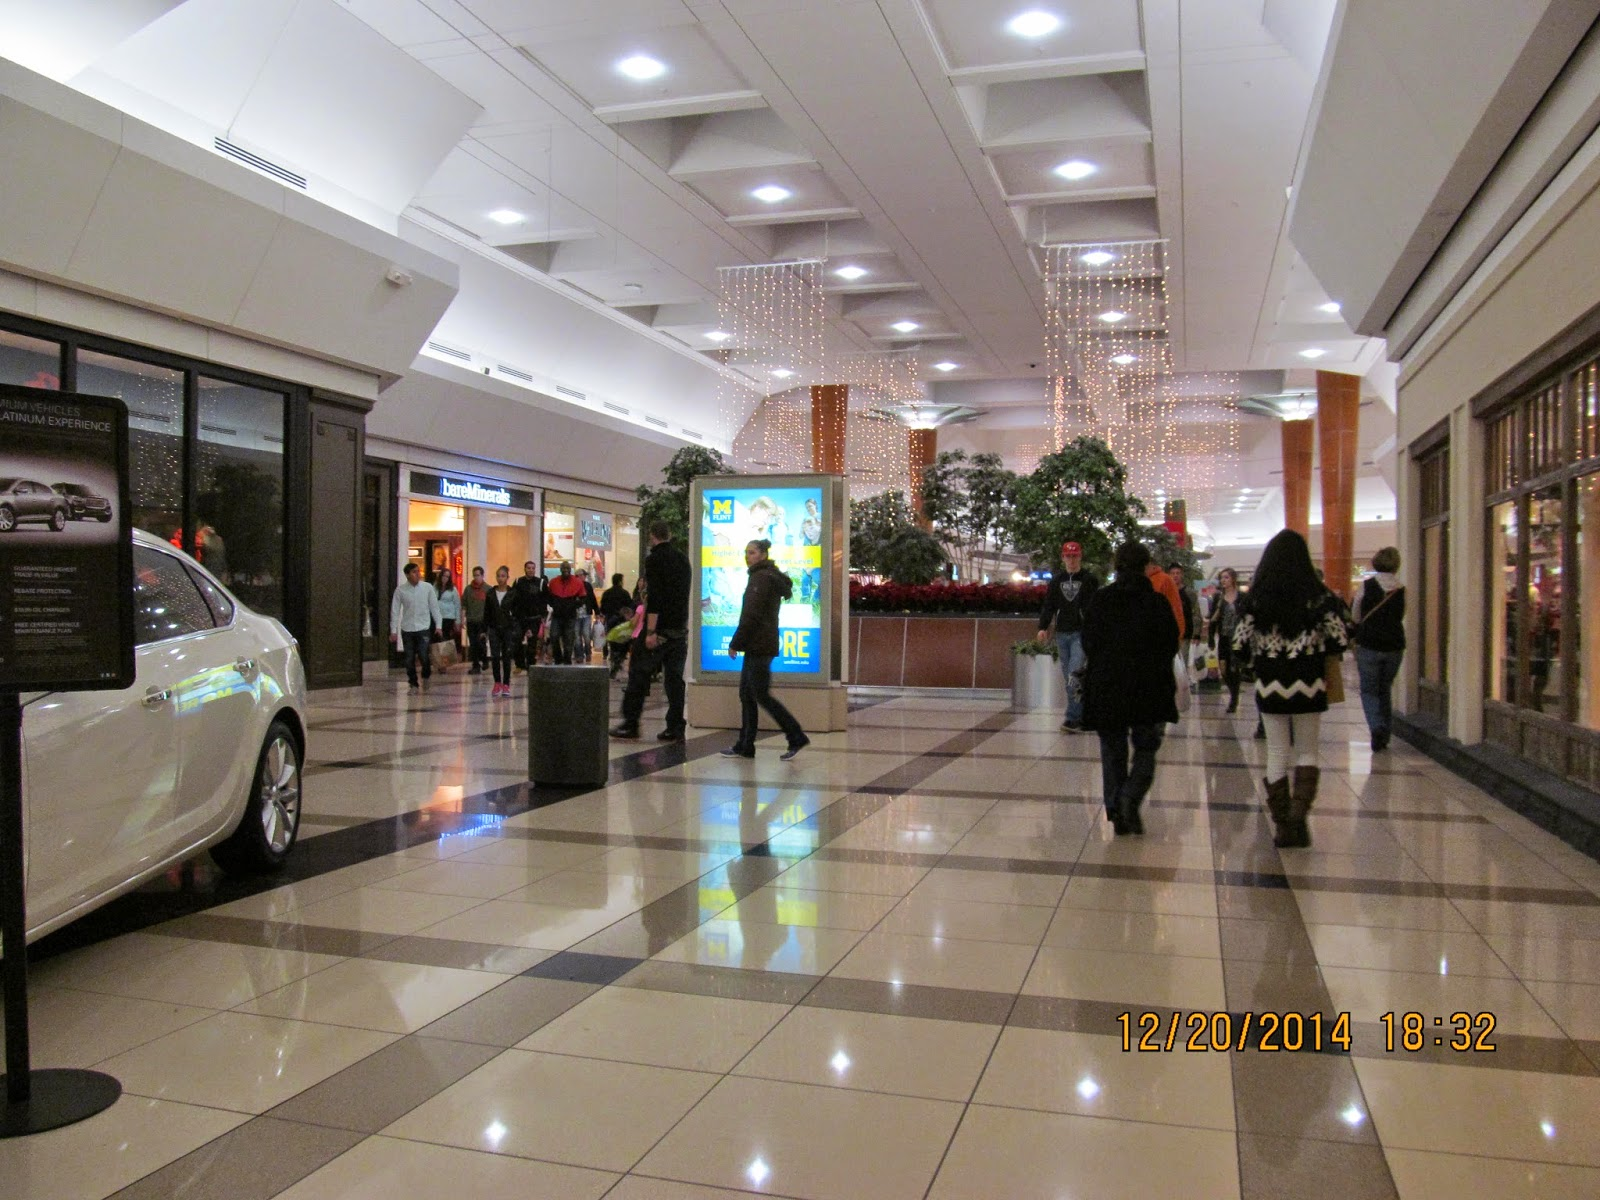 Hotels near Woodland Mall, Grand Rapids on TripAdvisor: Find 8, traveler reviews, 3, candid photos, and prices for 30 hotels near Woodland Mall in Grand Rapids, MI.